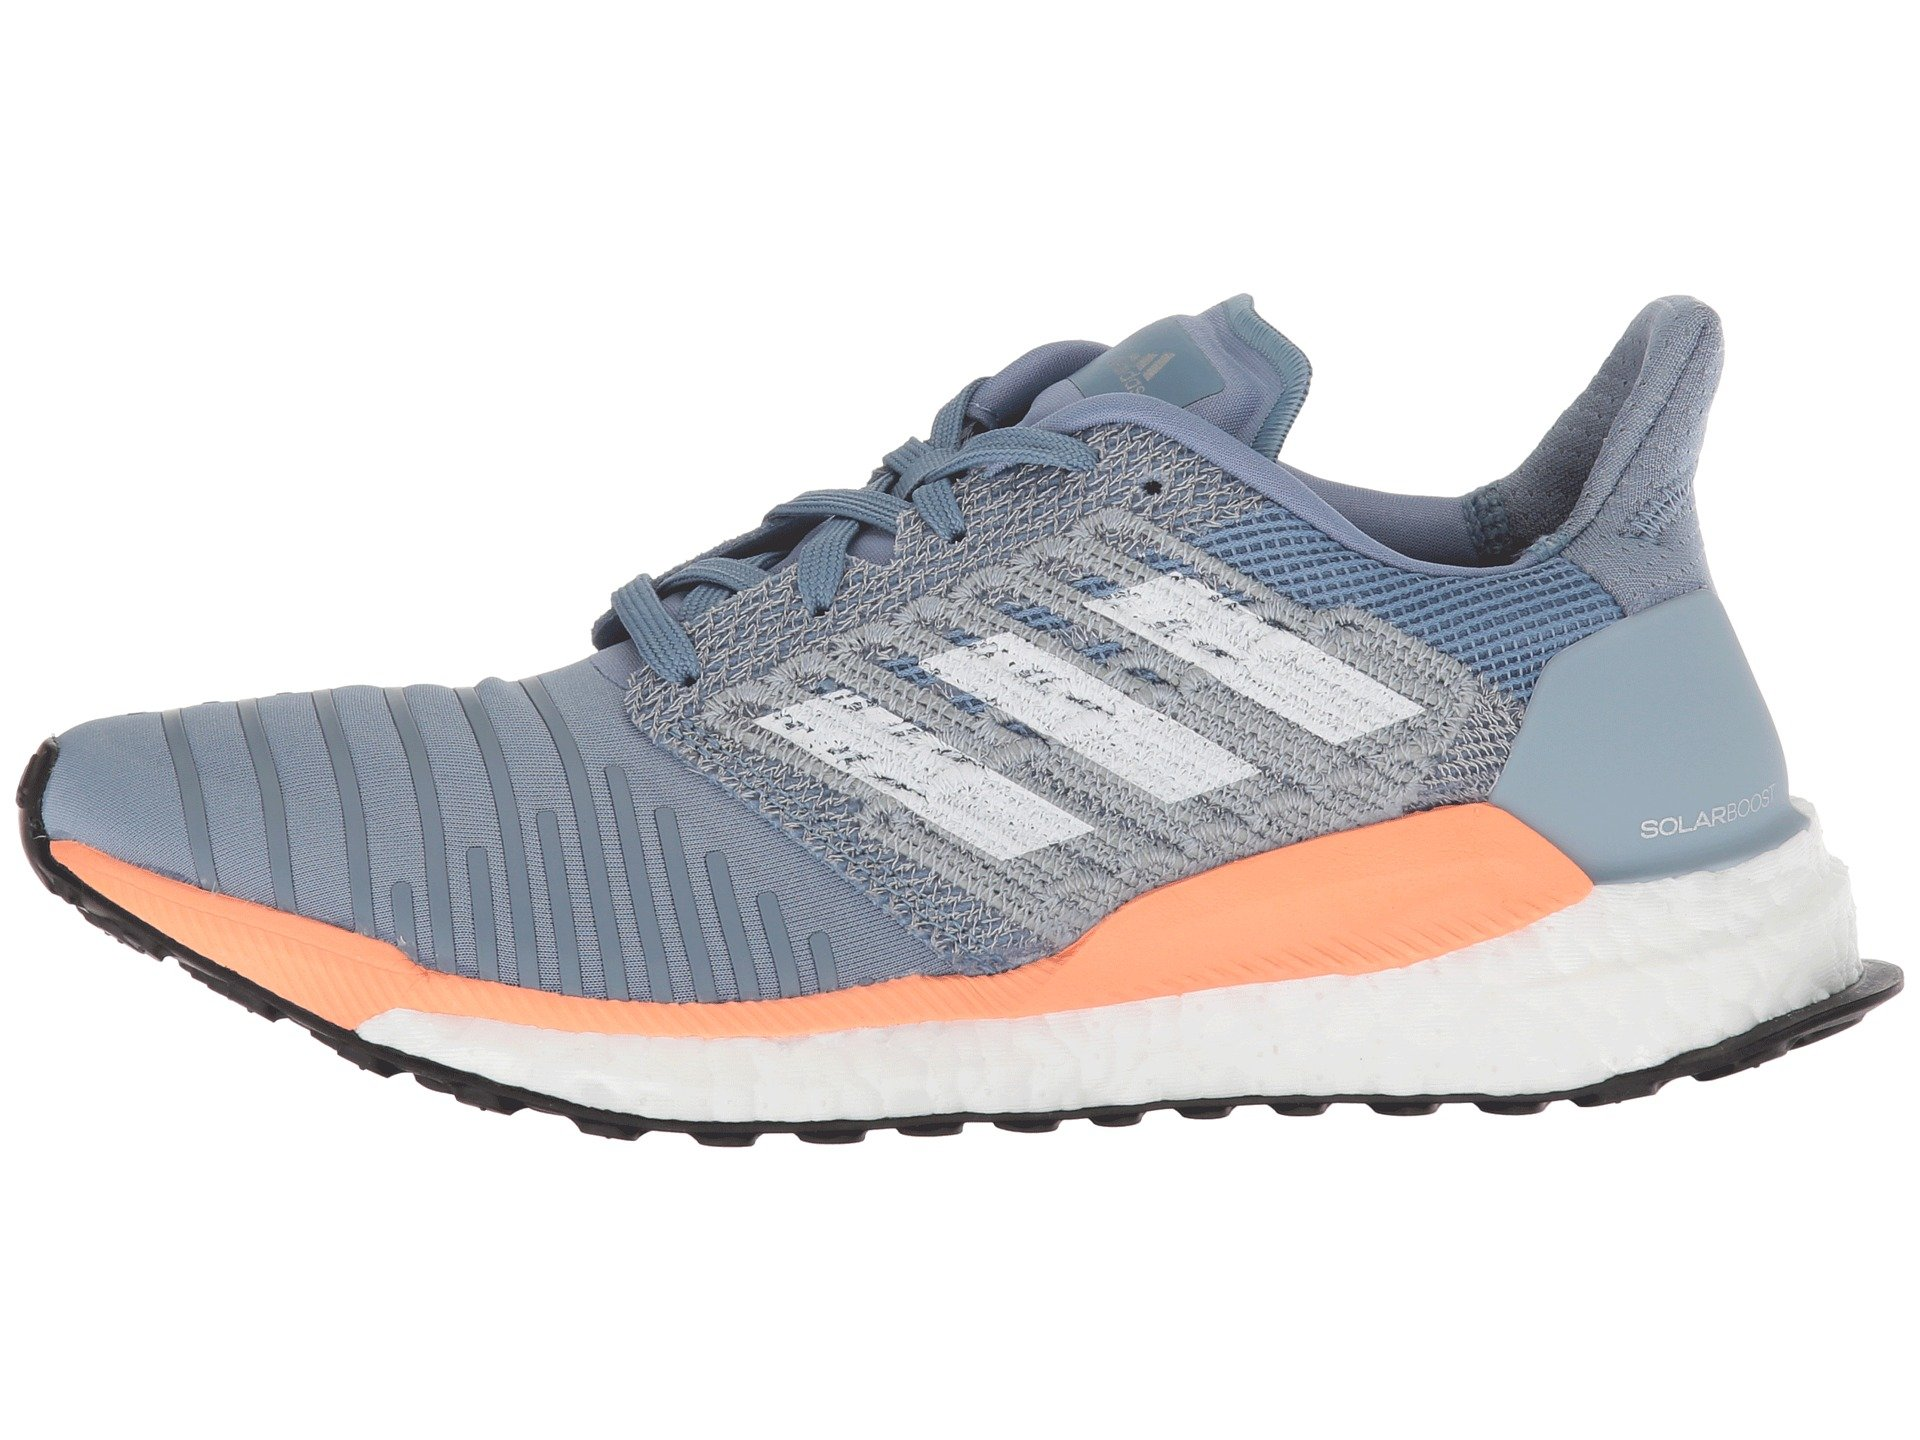 6aae6f067ad32 Best Adidas Running Shoes